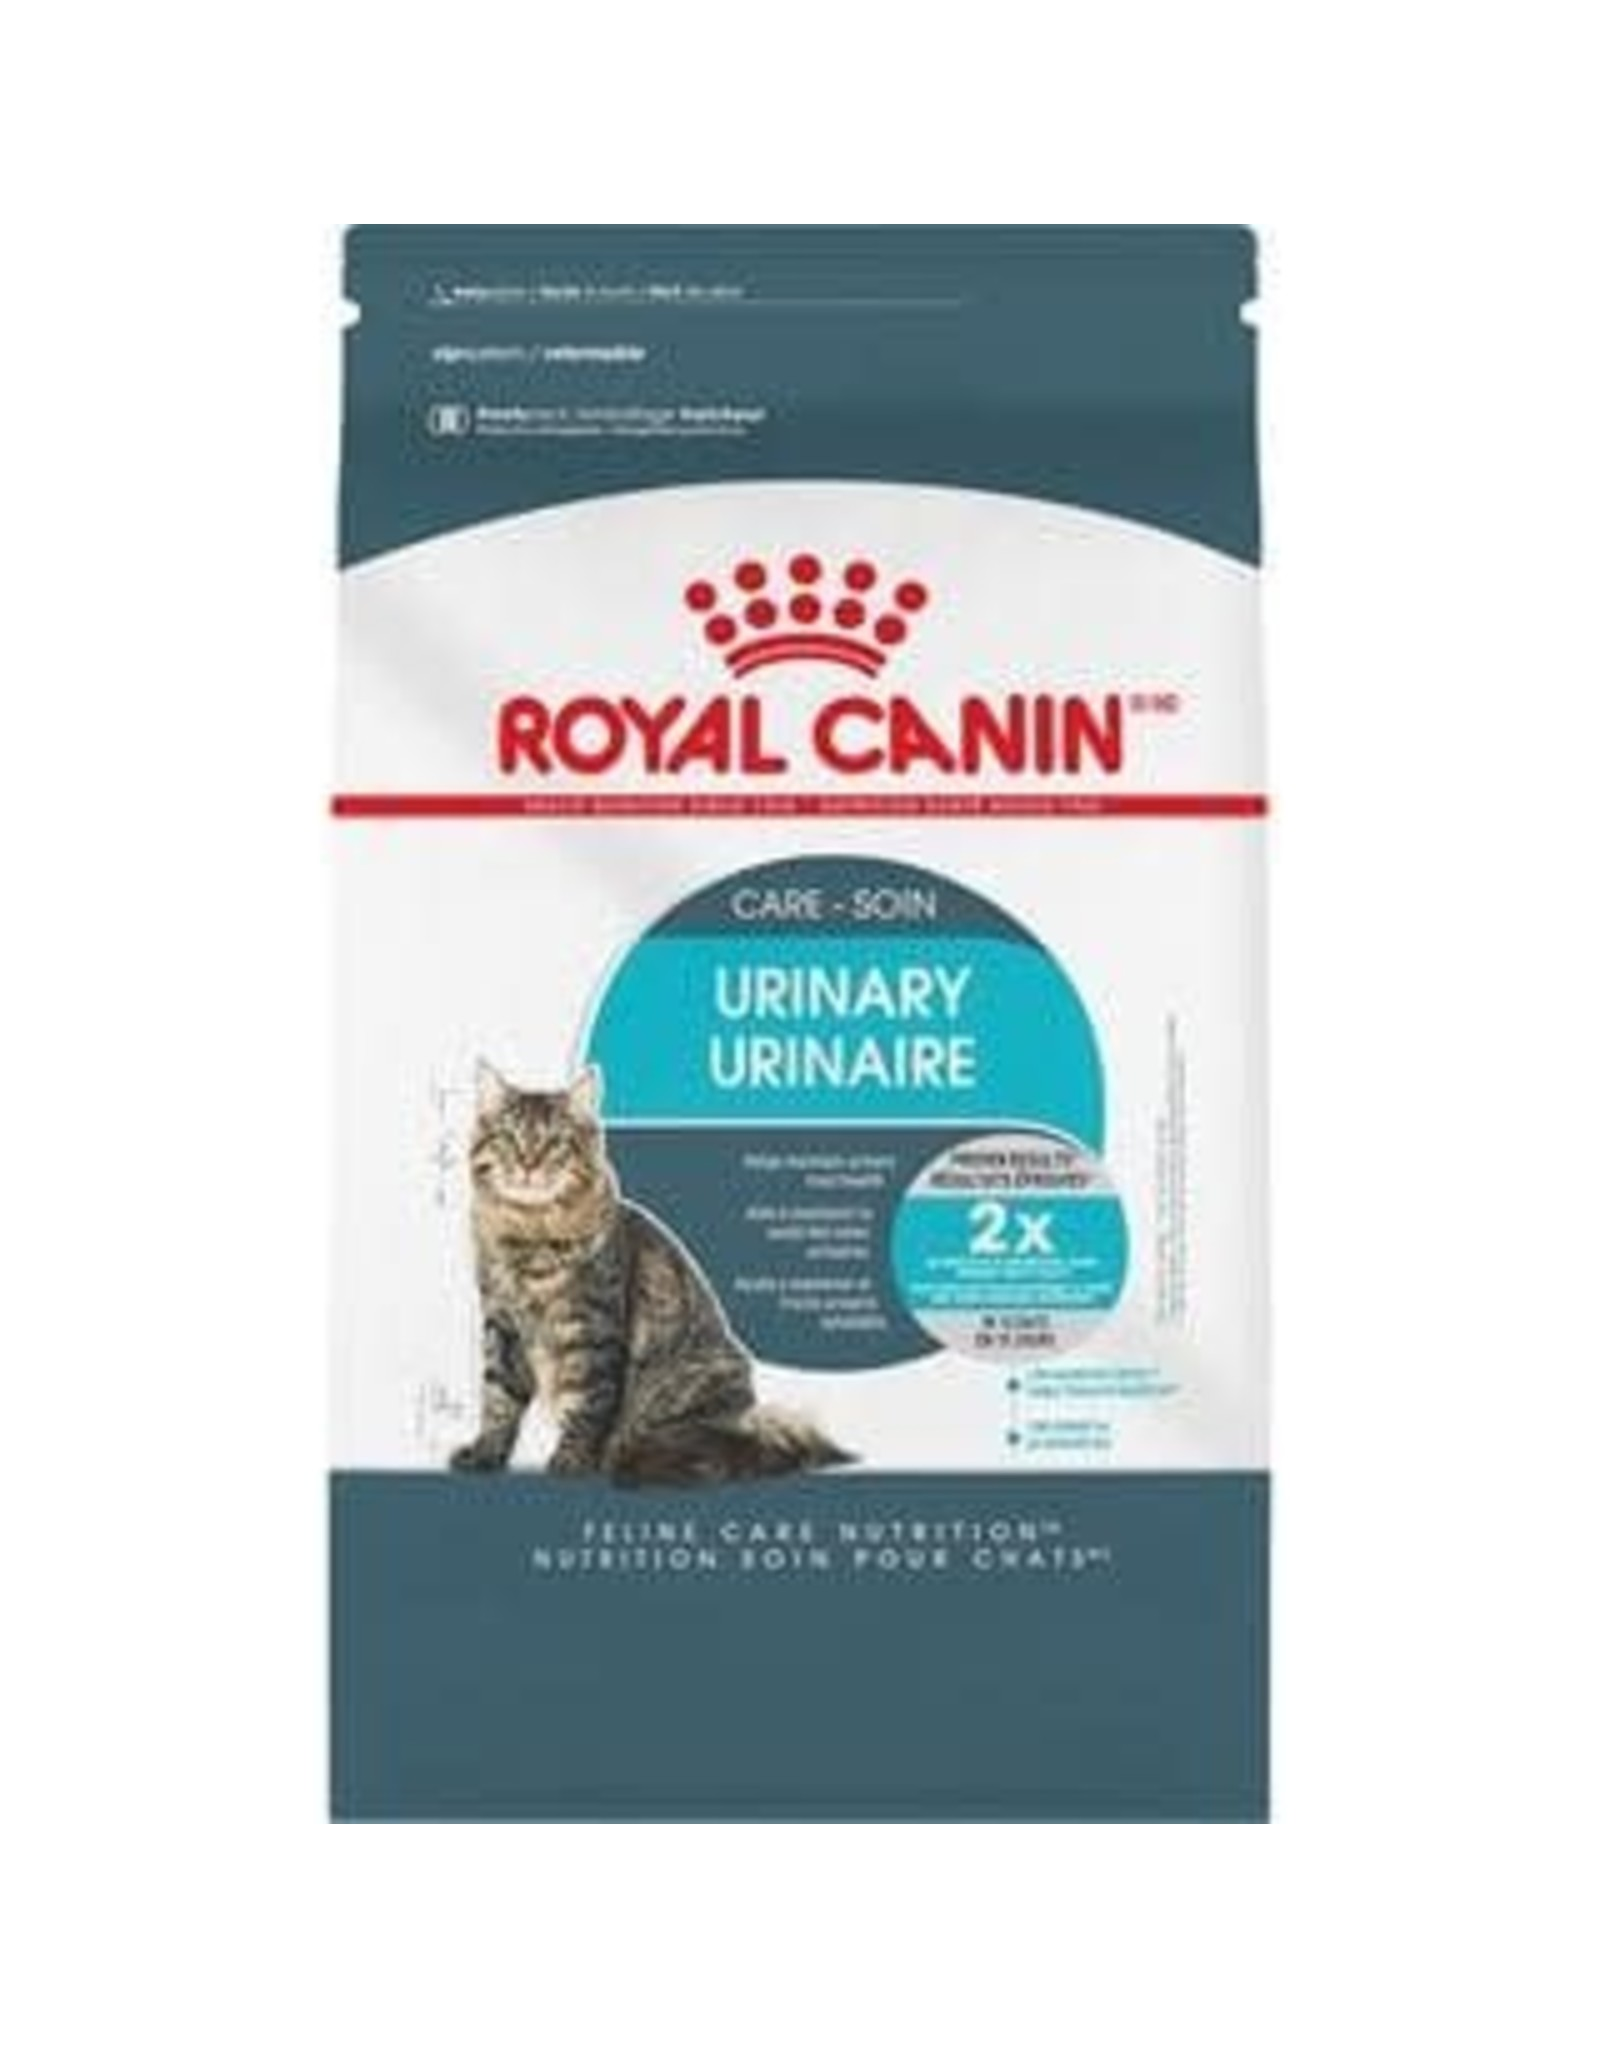 Royal Canin Royal Canin Cat - Care Urinary